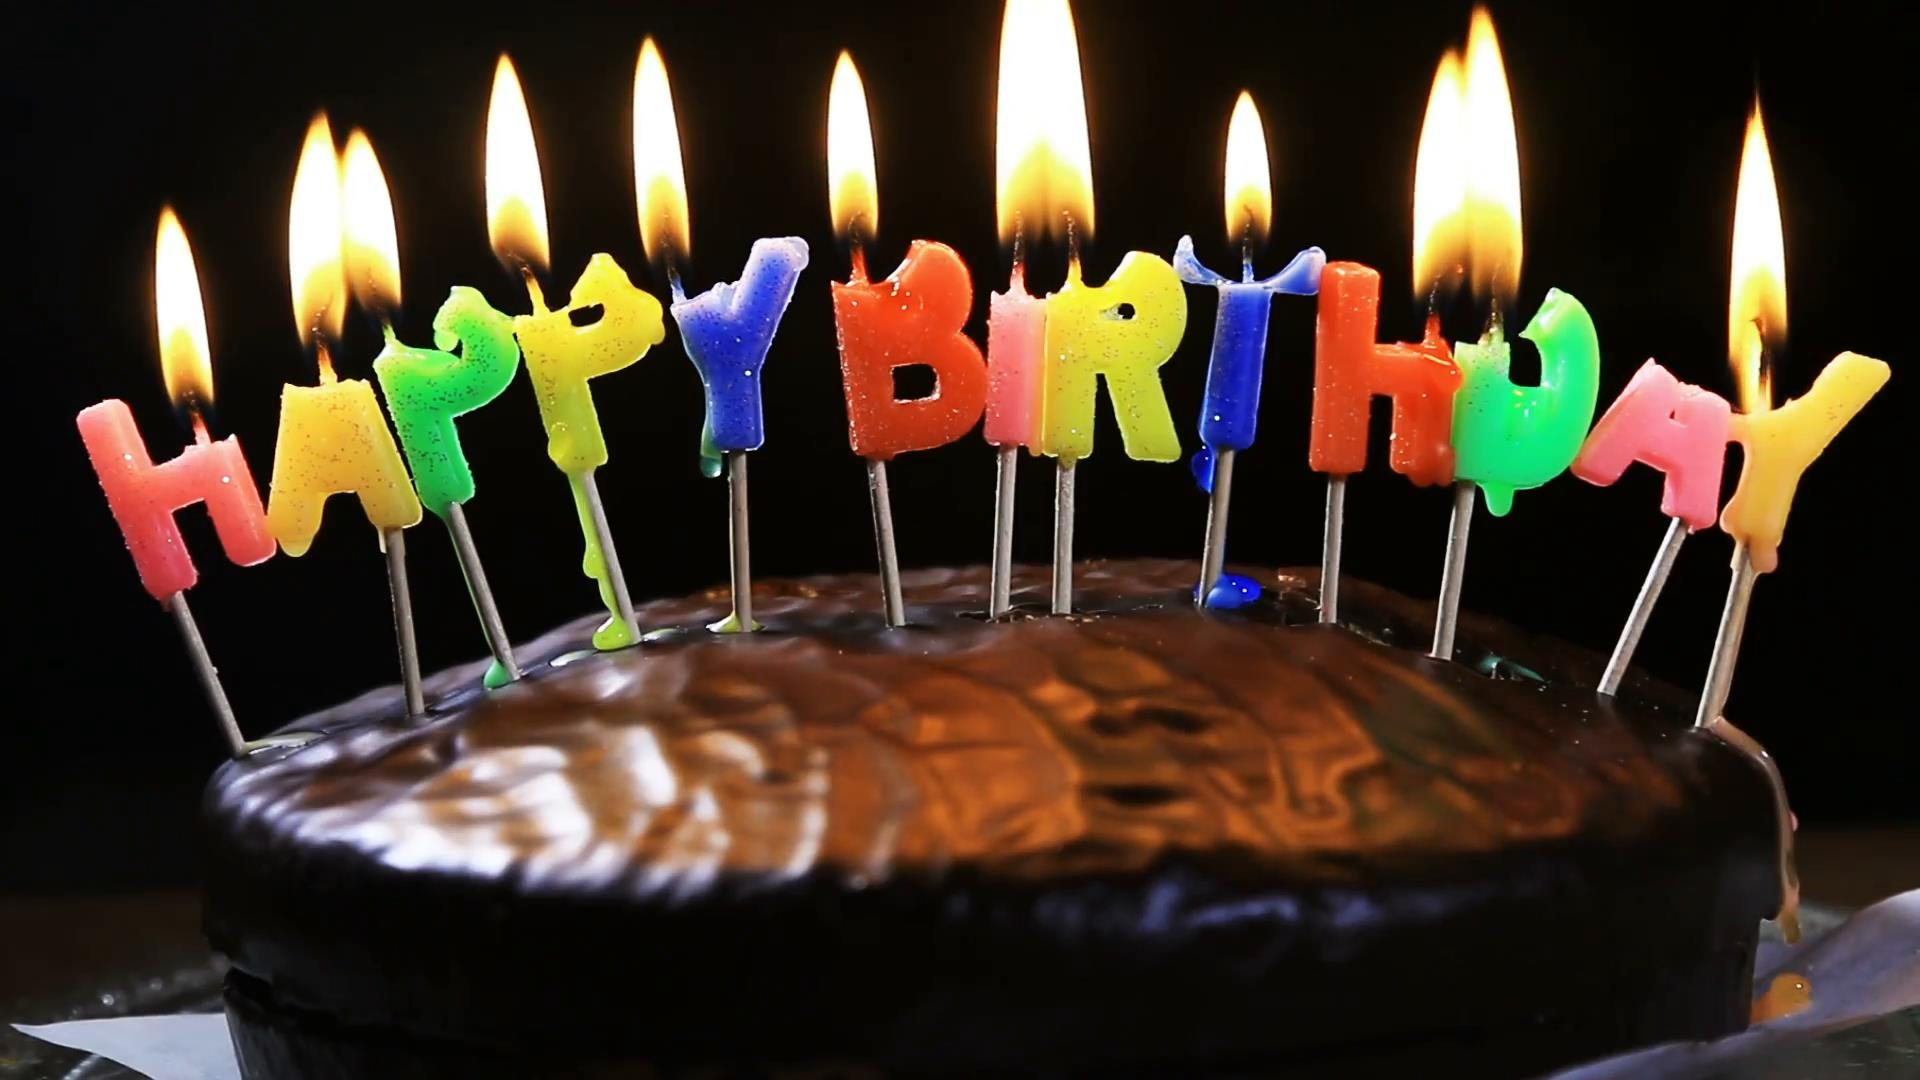 happy birthday cake with candles ; lighted-candles-on-a-happy-birthday-cake-candles-with-the-words-happy-birthday-on-a-chocolate-cake-hand-lights-a-candle-happy-birthday_rz7gcacv__F0009